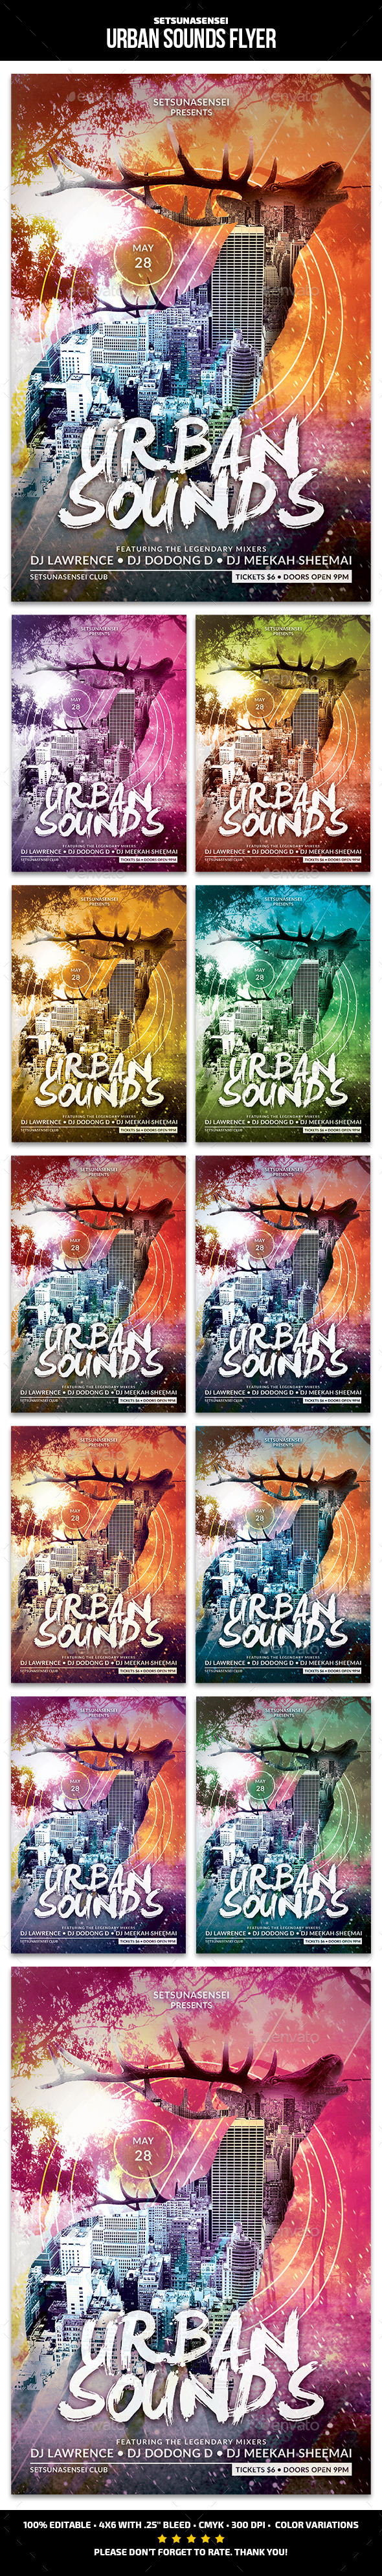 GraphicRiver Urban Sounds Flyer 11299105